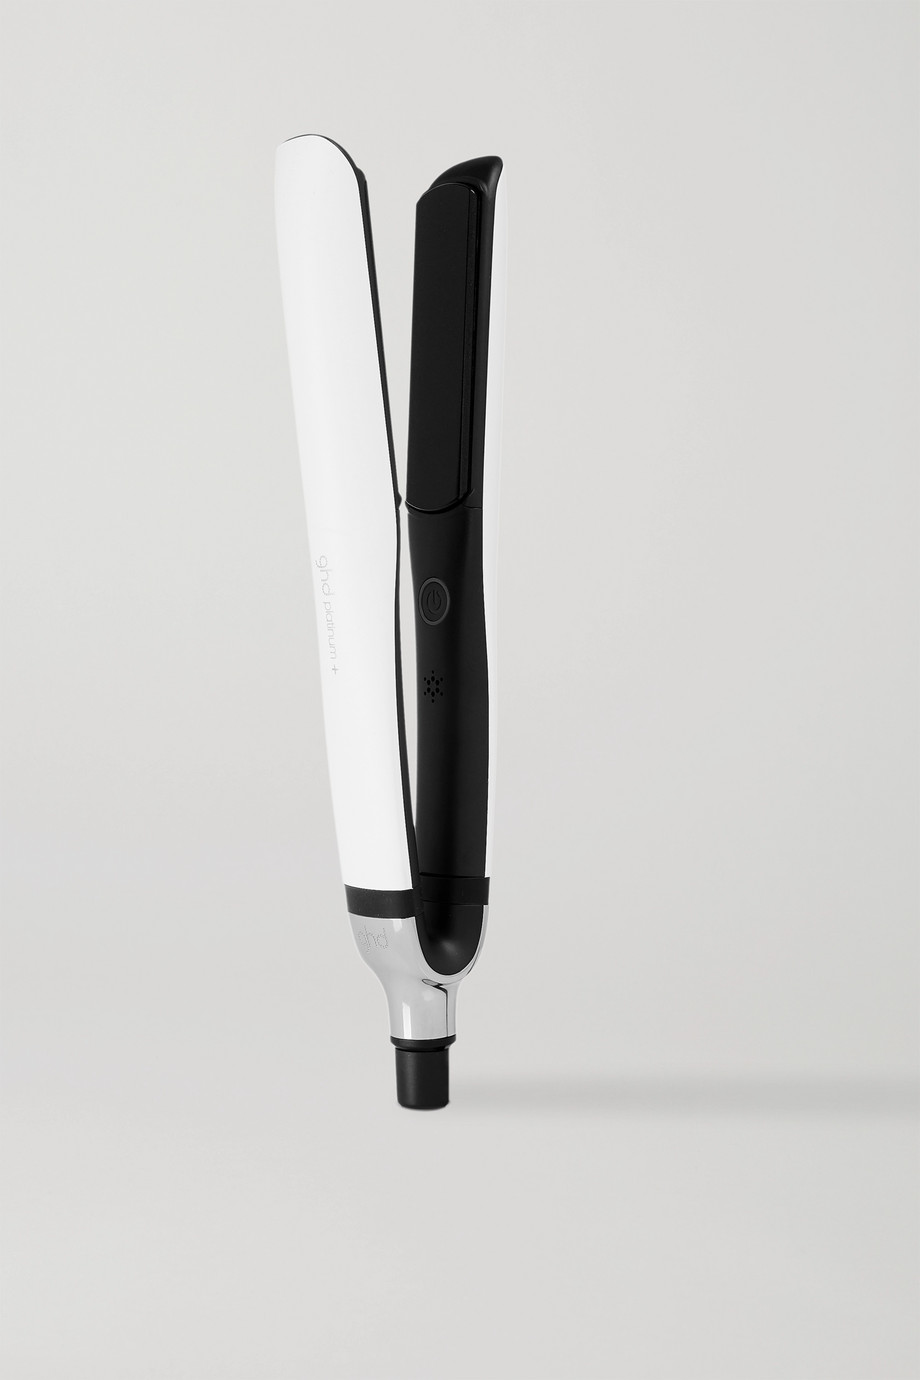 GHD Platinum+ Professional Styler - UK 3-pin plug